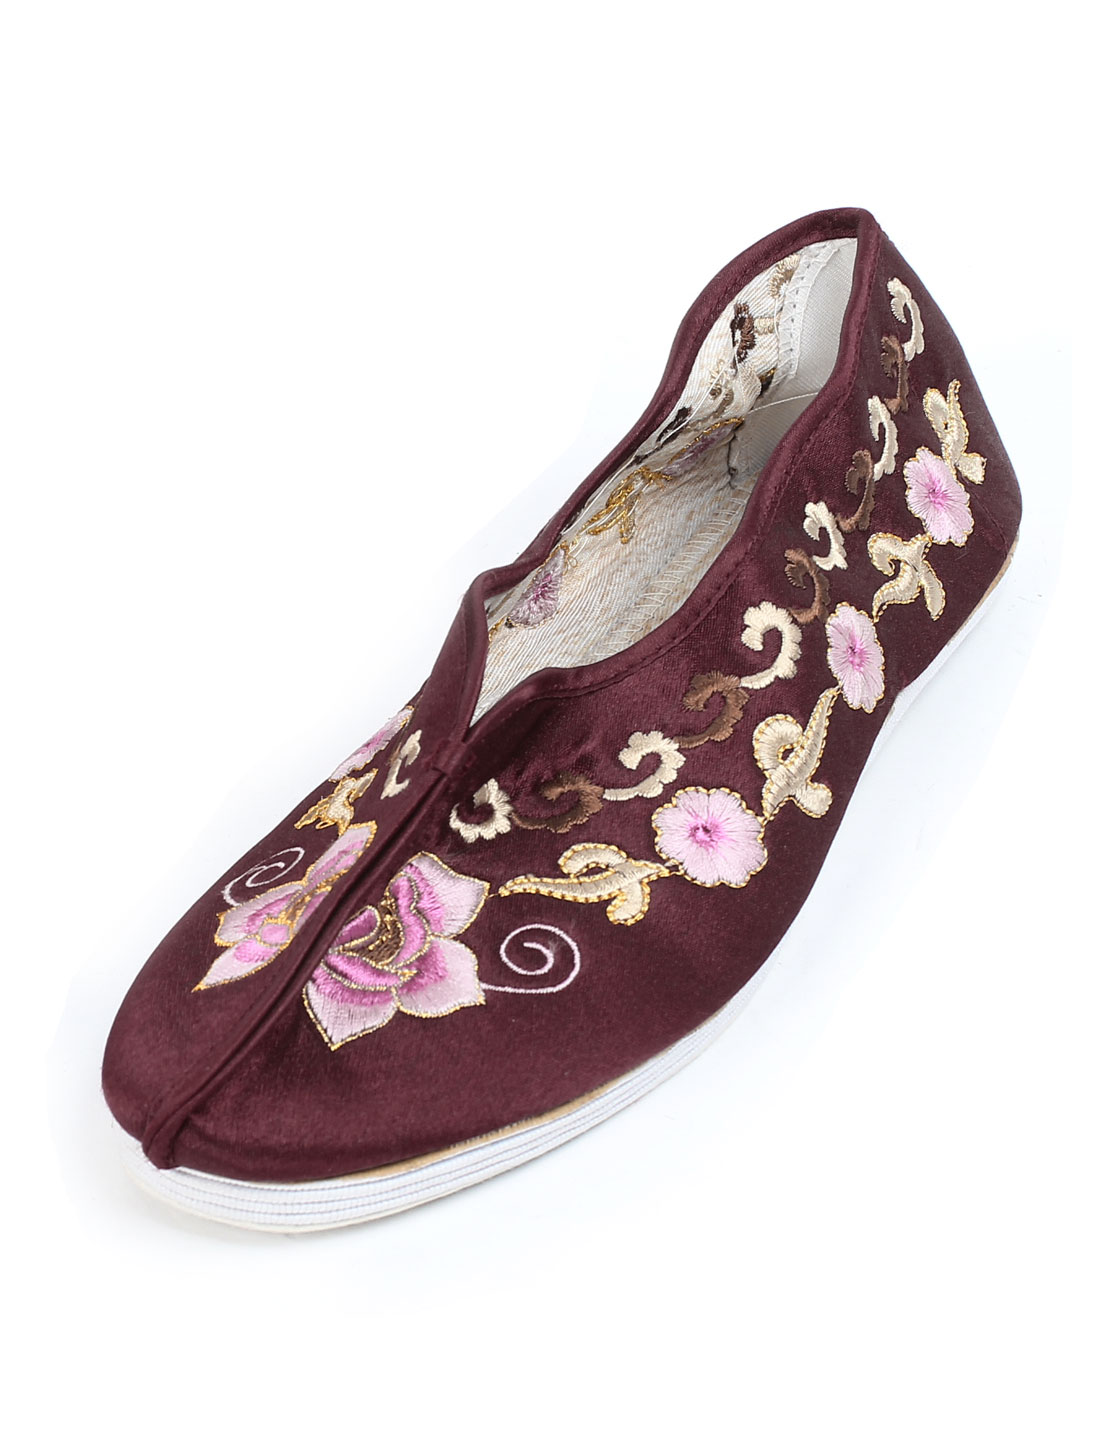 Ladies Burgundy Floral Pattern Slip On Cotton Blends Flat Shoes Pair